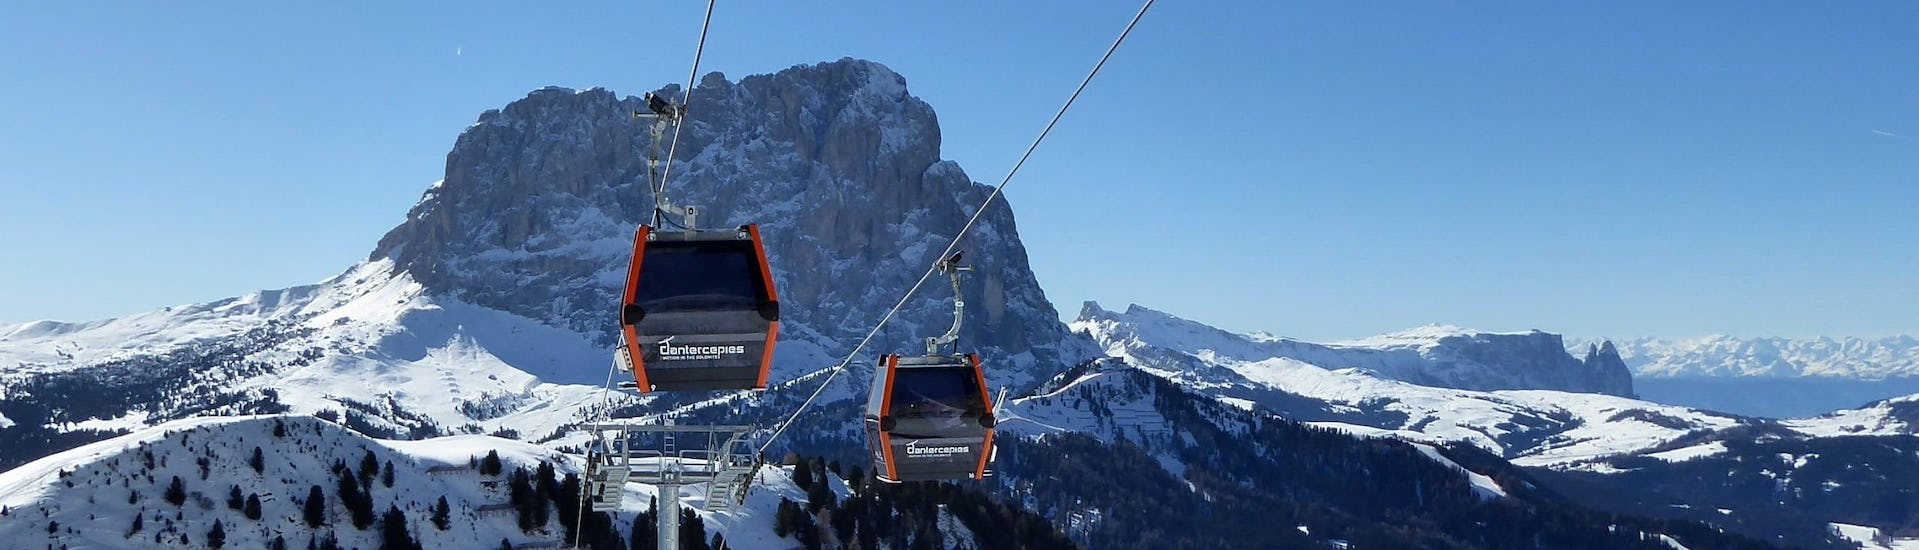 View over the sunny mountain landscape while learning to ski with the ski schools in Selva di Val Gardena.